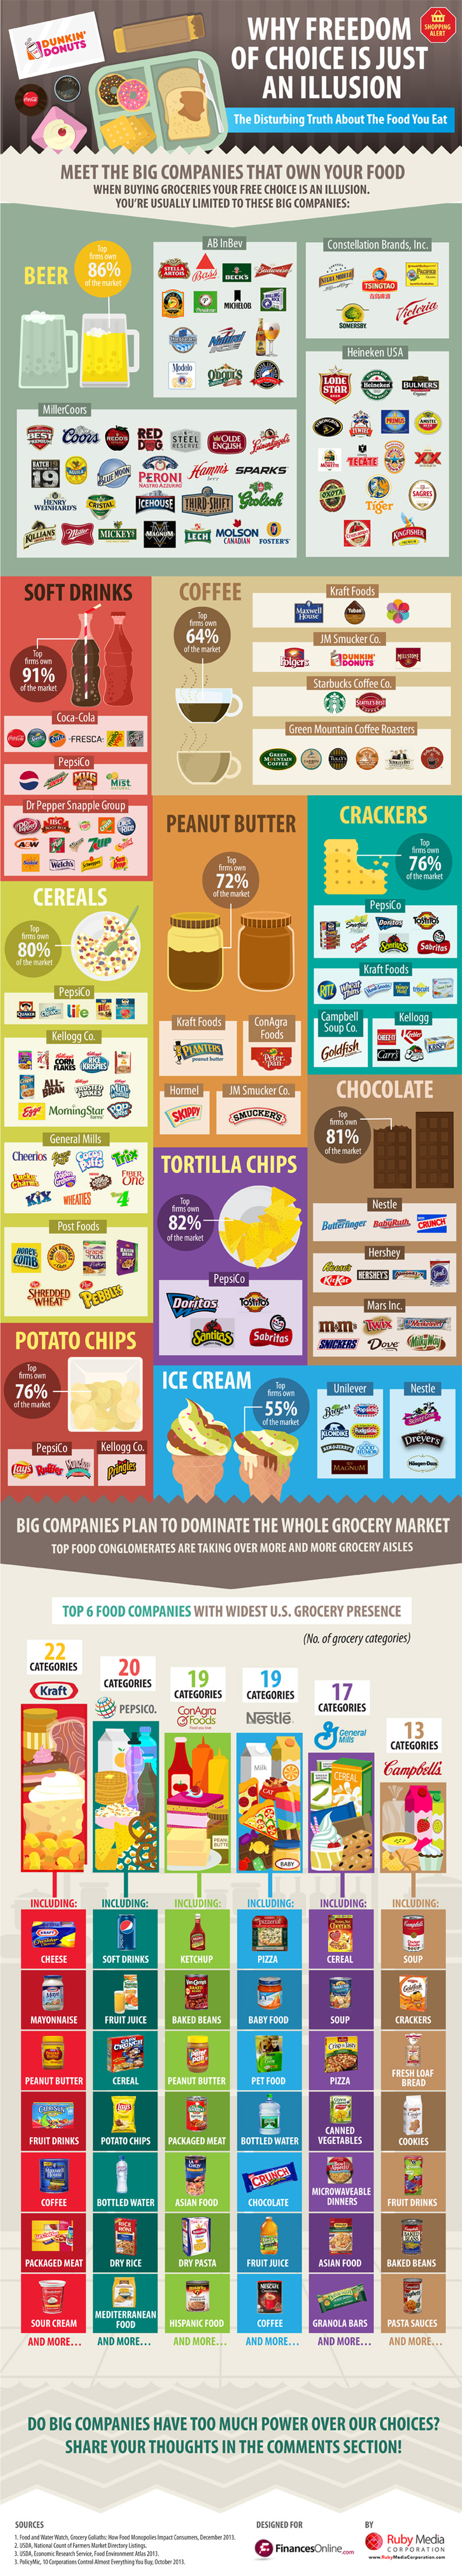 Top Grocery Brands Comparison: Disturbing Truth About How Big Food Companies Exploit Your Shopping Habits and Monopolize the Market